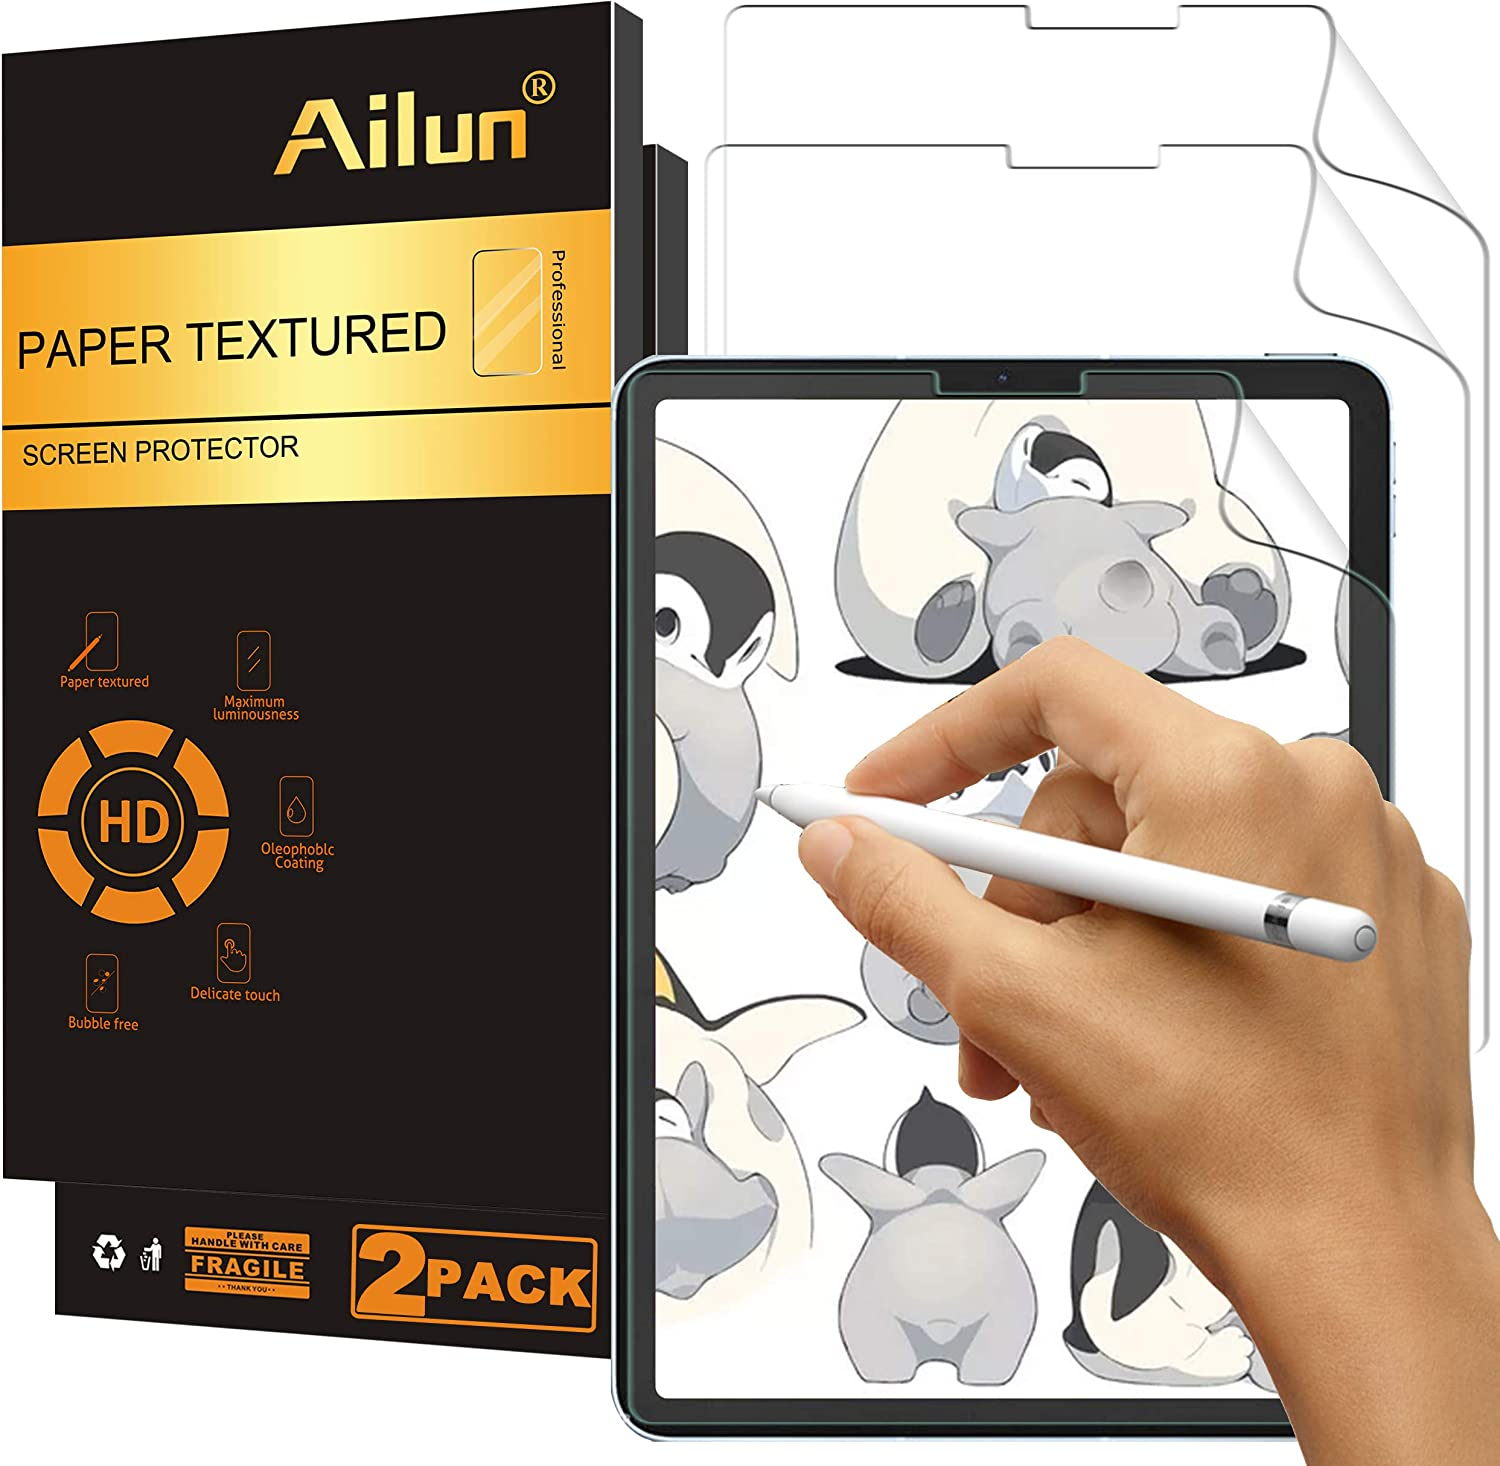 Ailun Paper Textured Screen Protector Compatible for New iPad Air 4th Generation[10.9 inch,2020 Release],iPad Pro 11 Inch[2021&2020&2018 Release] 2Pack Draw and Sketch Like on Papertouch Anti Glare